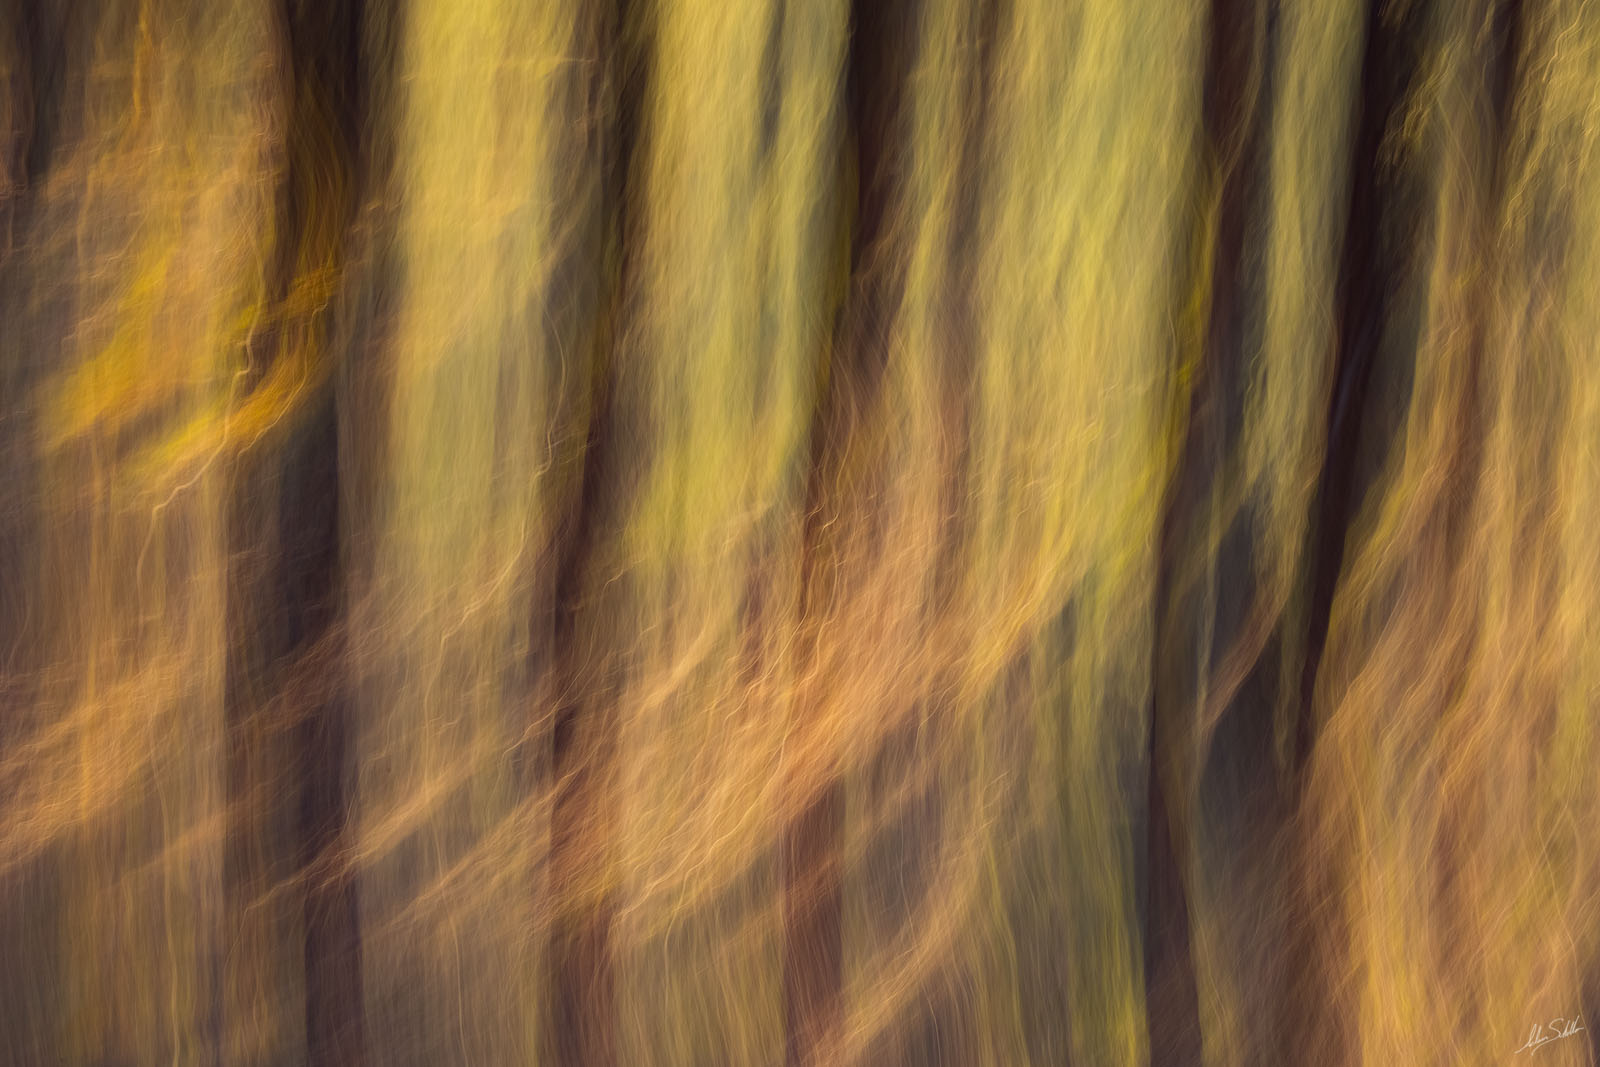 An impressionistic view of the Ponderosa pine trees near Flagstaff, Arizona. I created this photo in a single exposure by using...